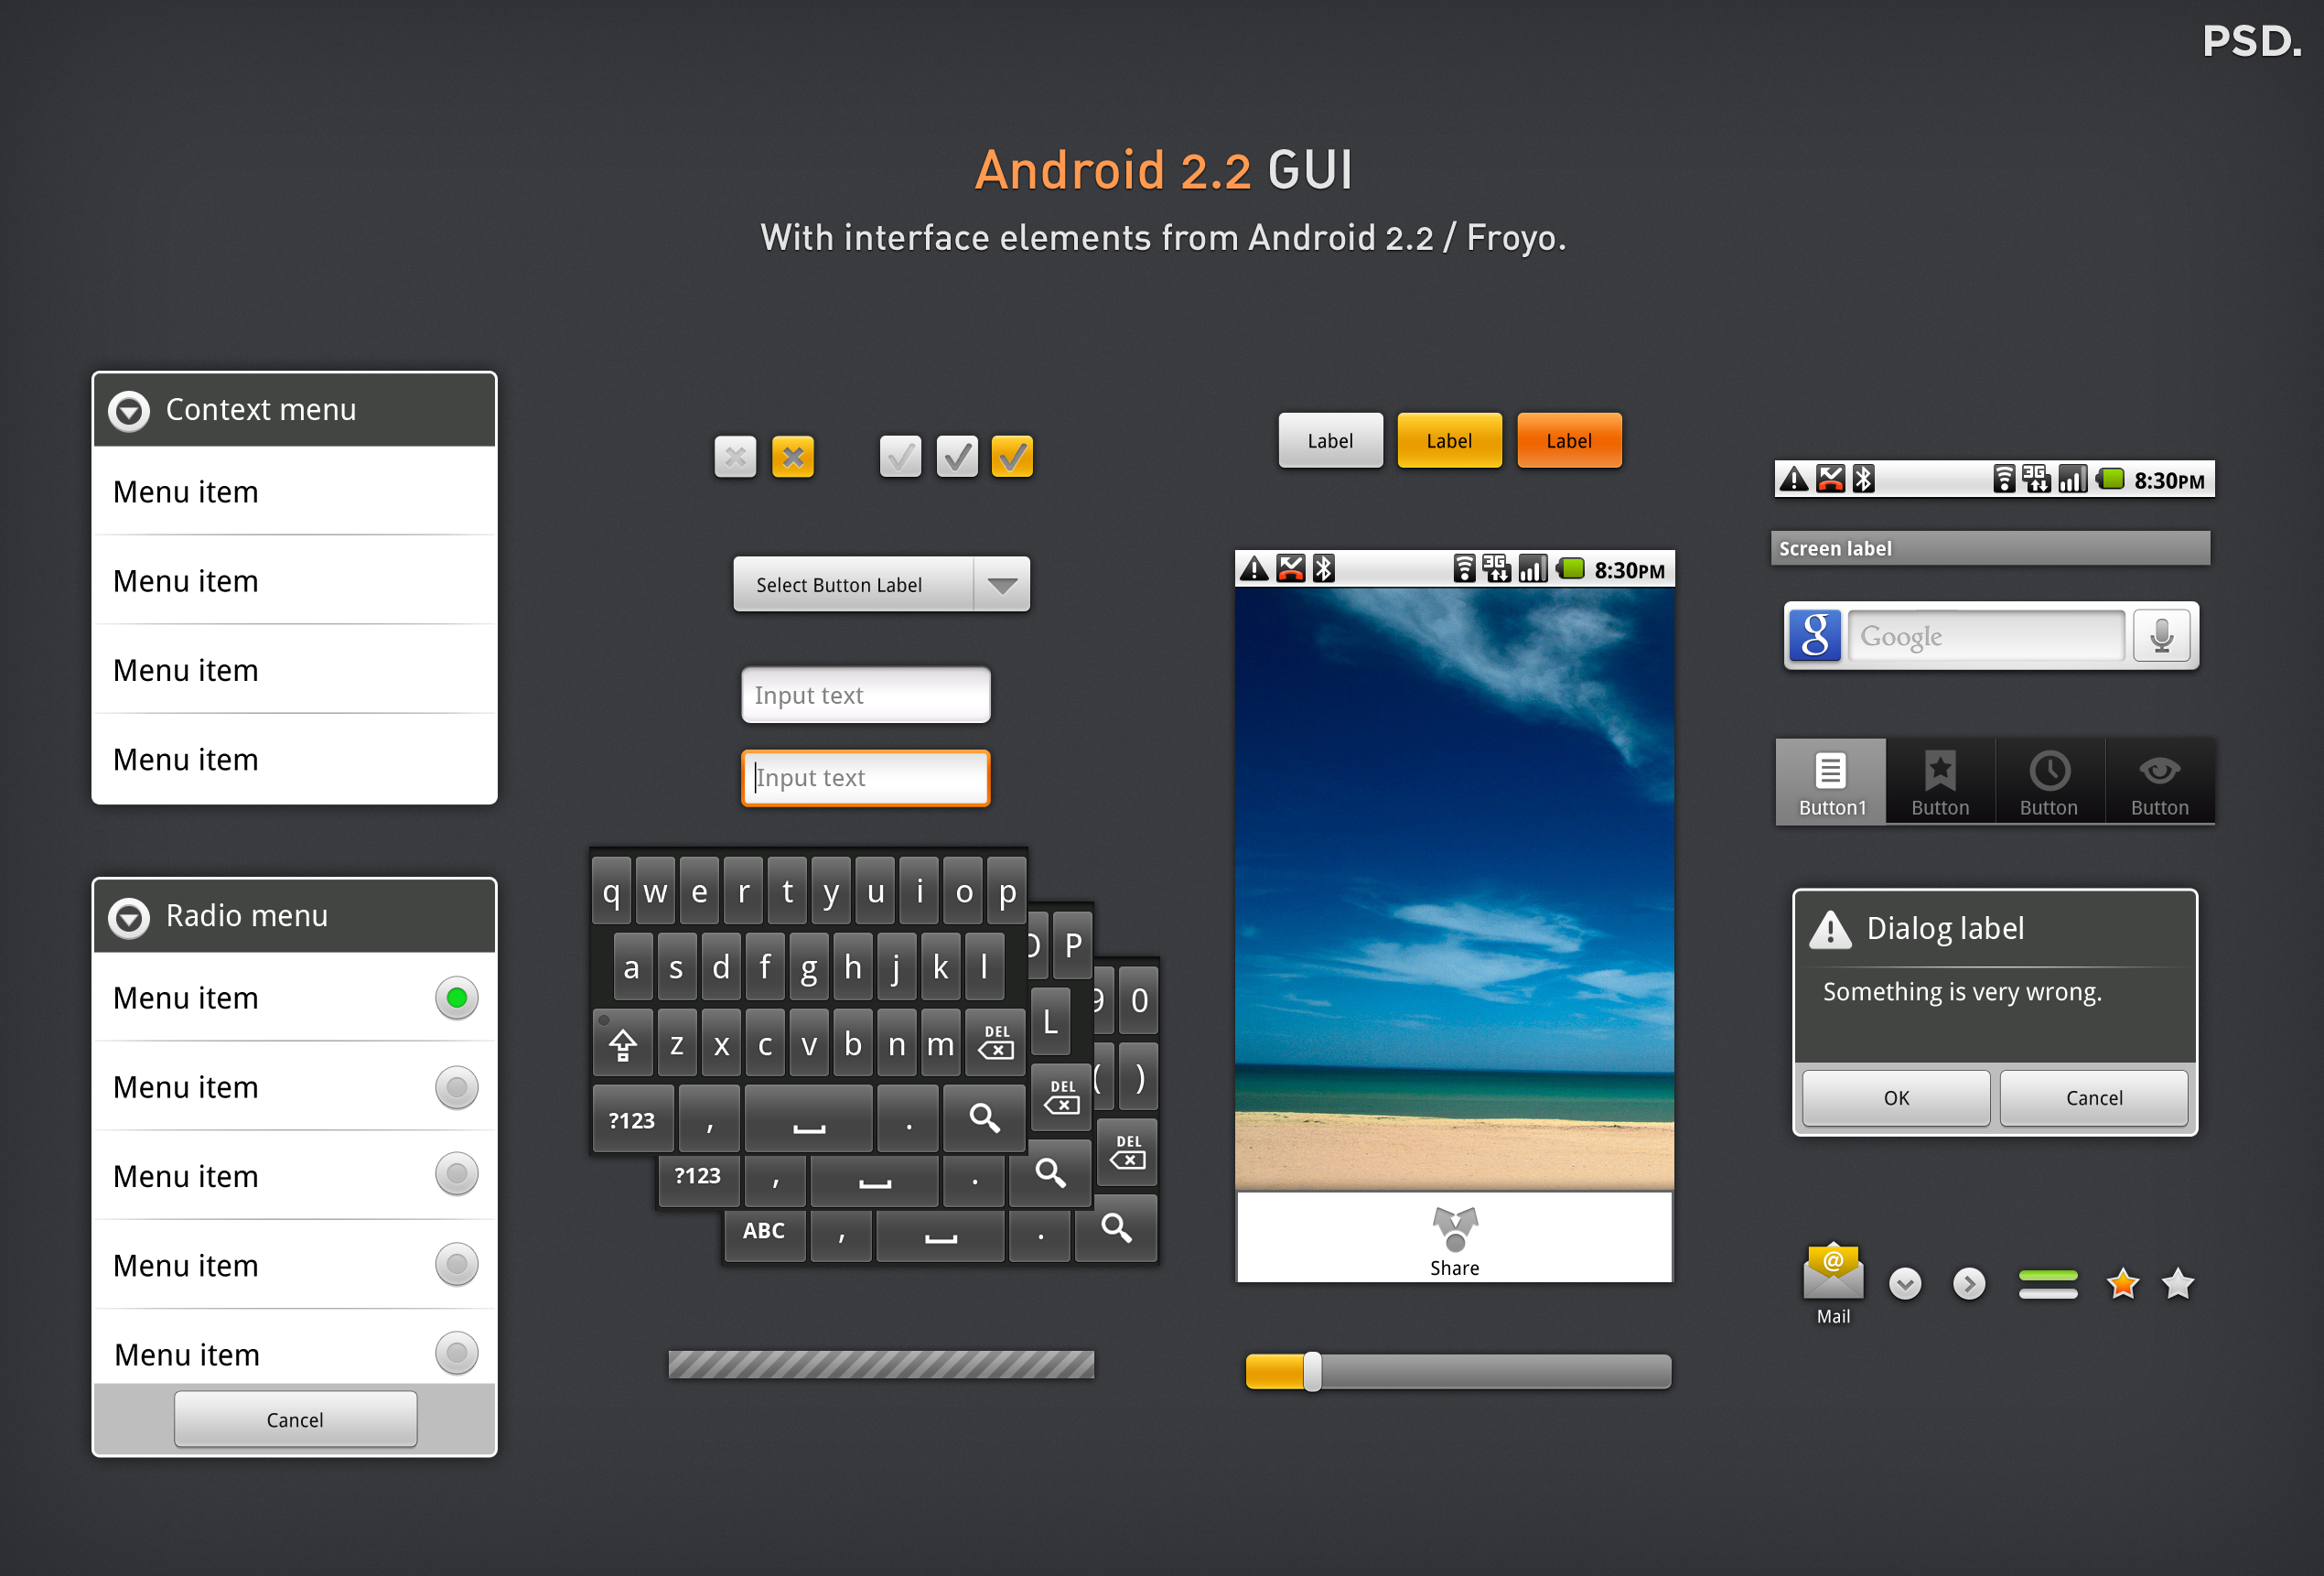 Android 2.2 GUI by ~thiago-silva on deviantART